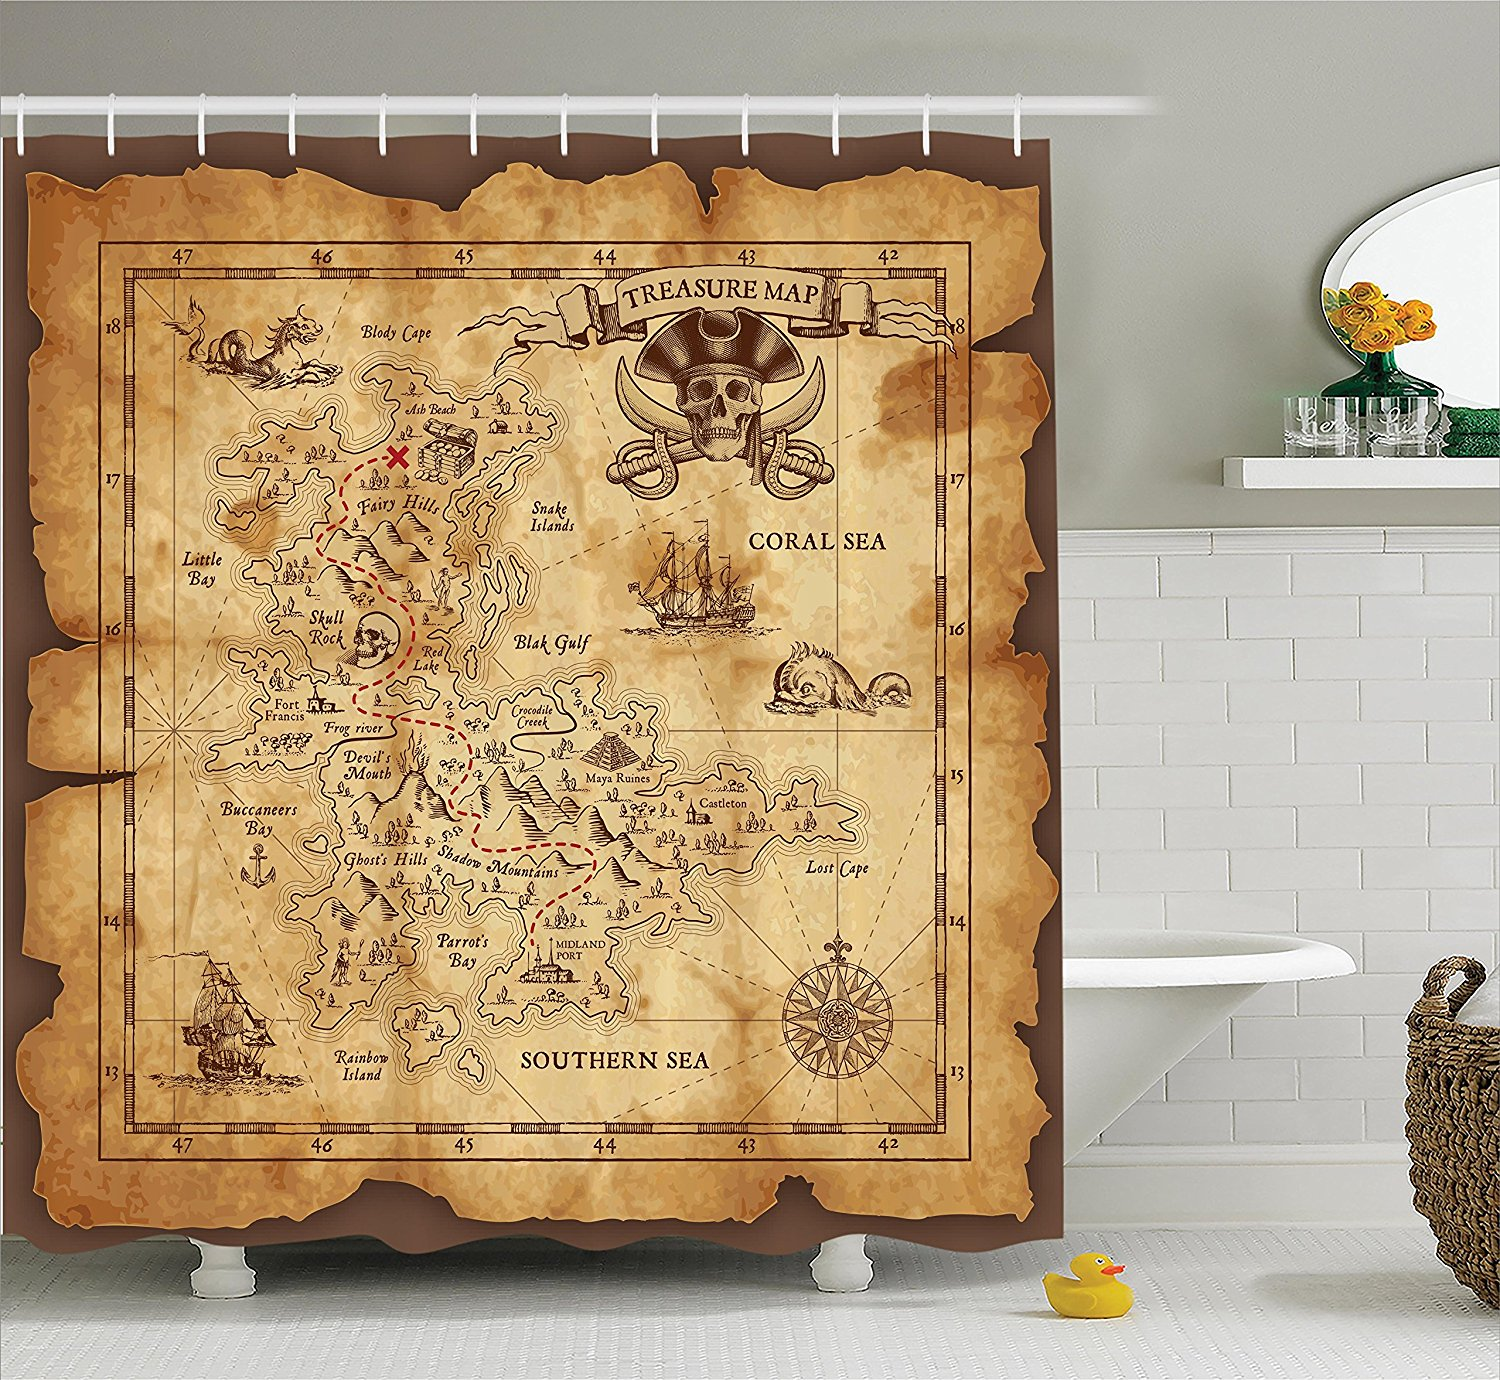 Island Map Decor Shower Curtain Set Super Detailed Treasure Map Grungy Rustic Pirates Gold Secret Sea History Theme, Bathroom